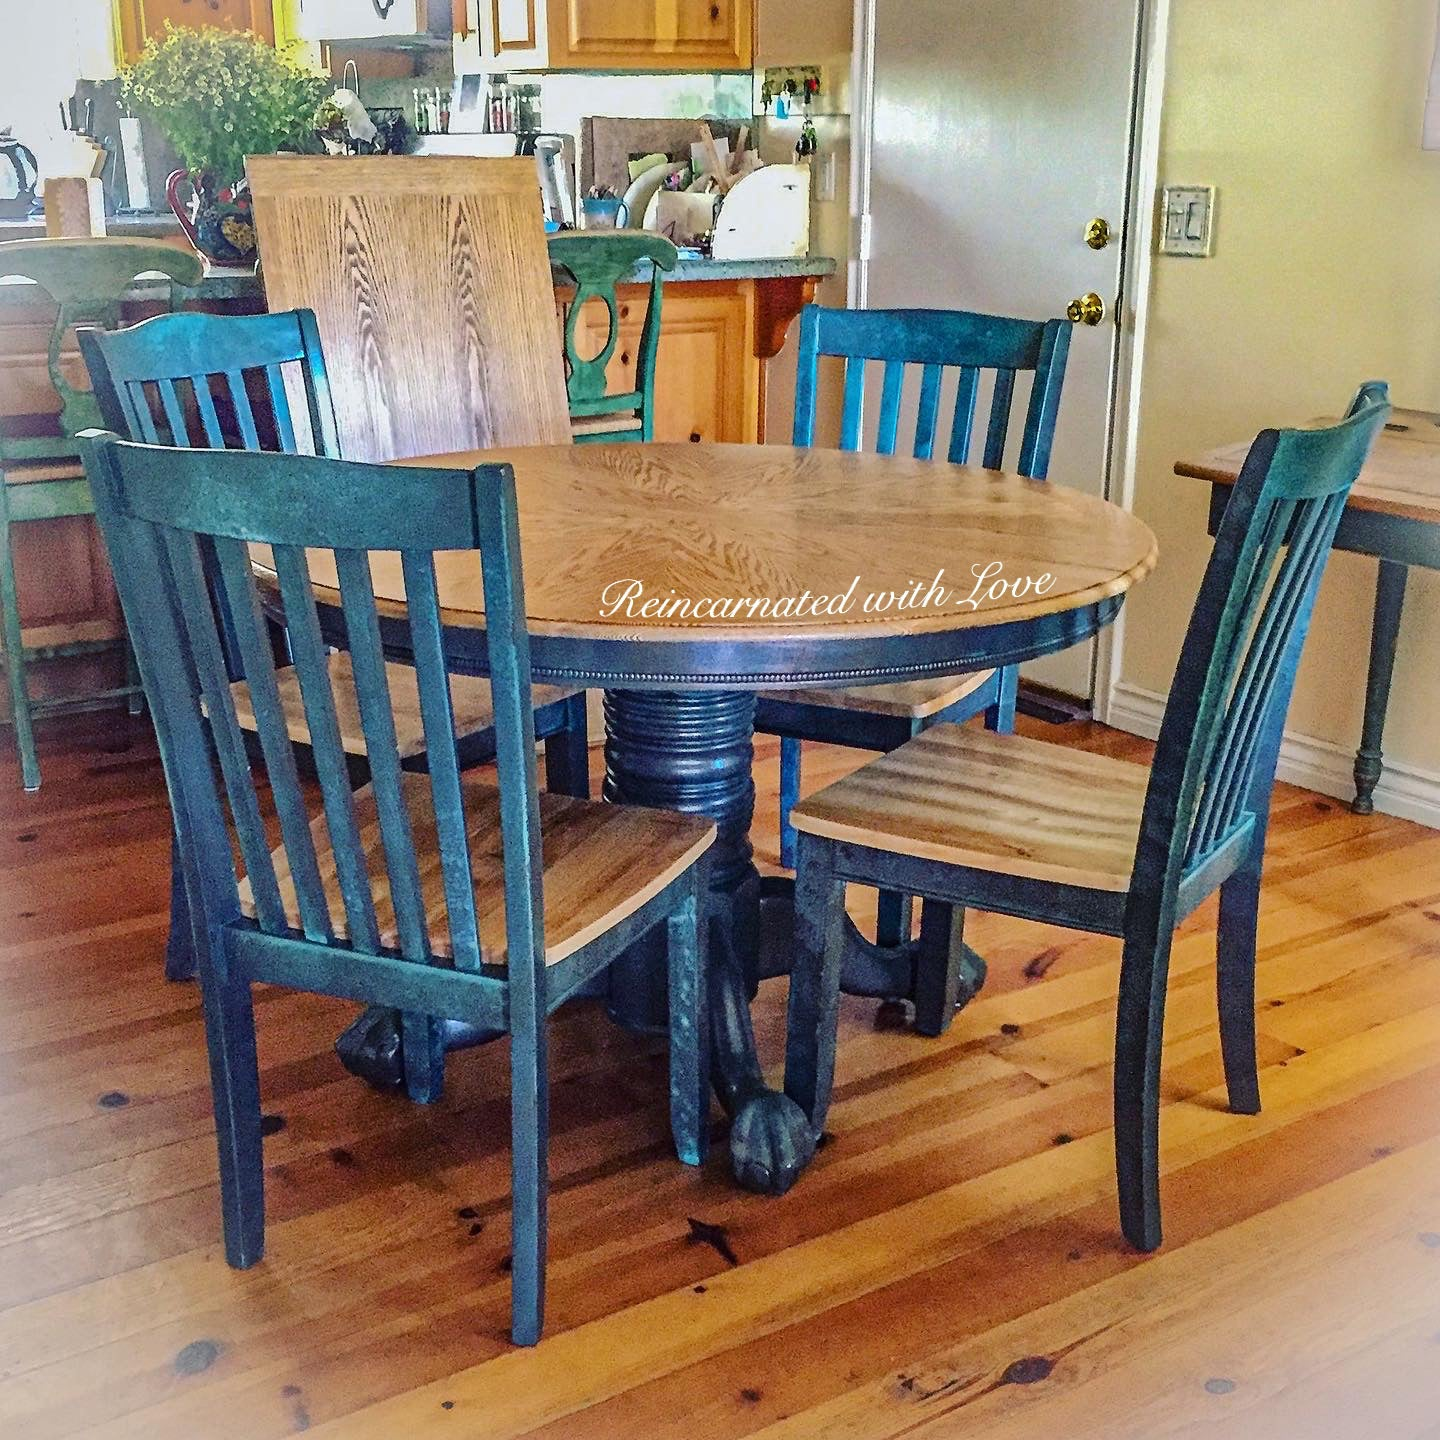 Shabby Chic Dining Set Painted Furniture Reincarnated With Love Reincarnated With Love